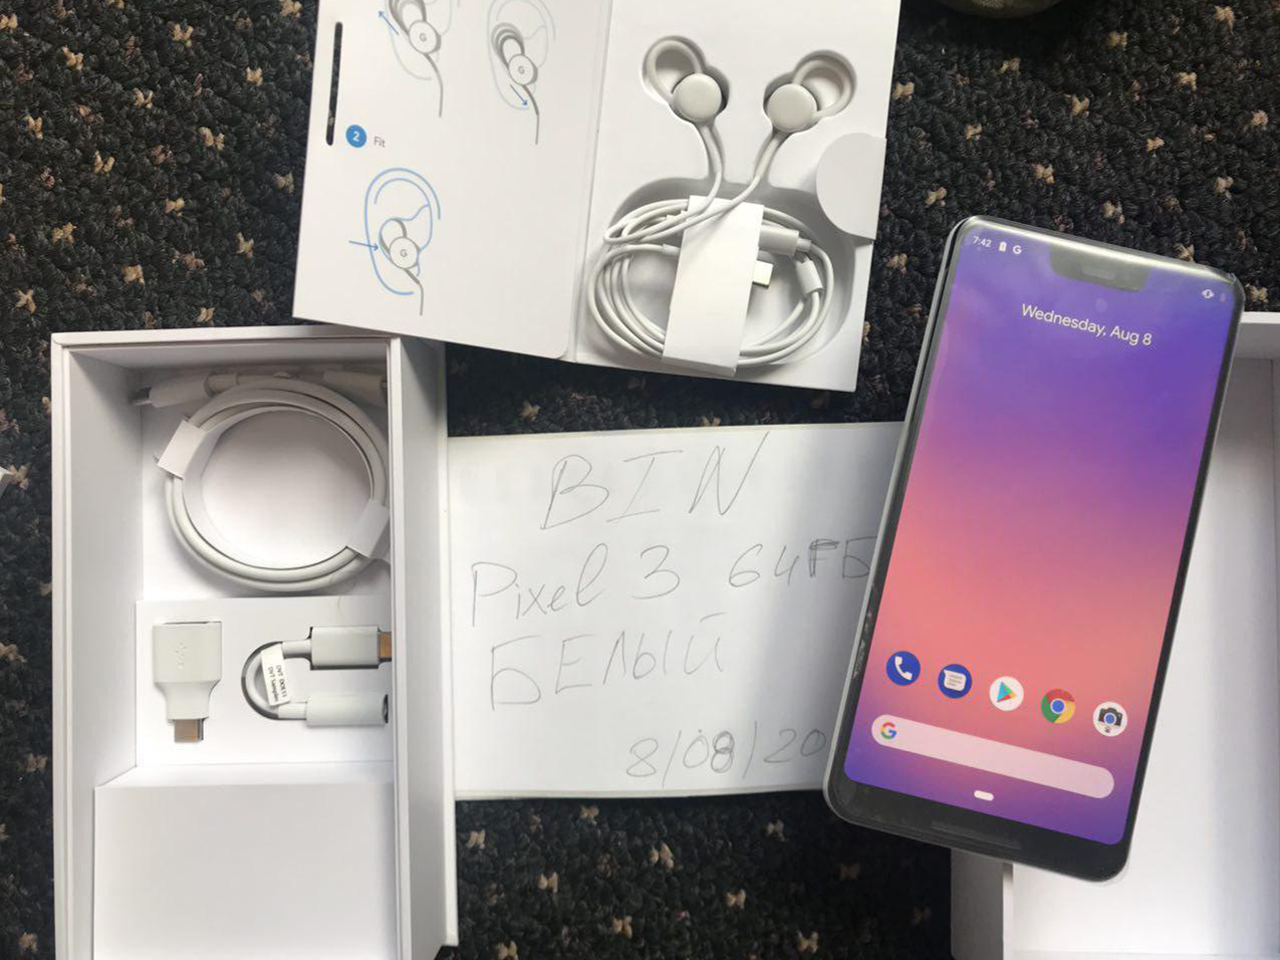 Google Pixel 3 XL unboxing video, USB-C earbuds leak